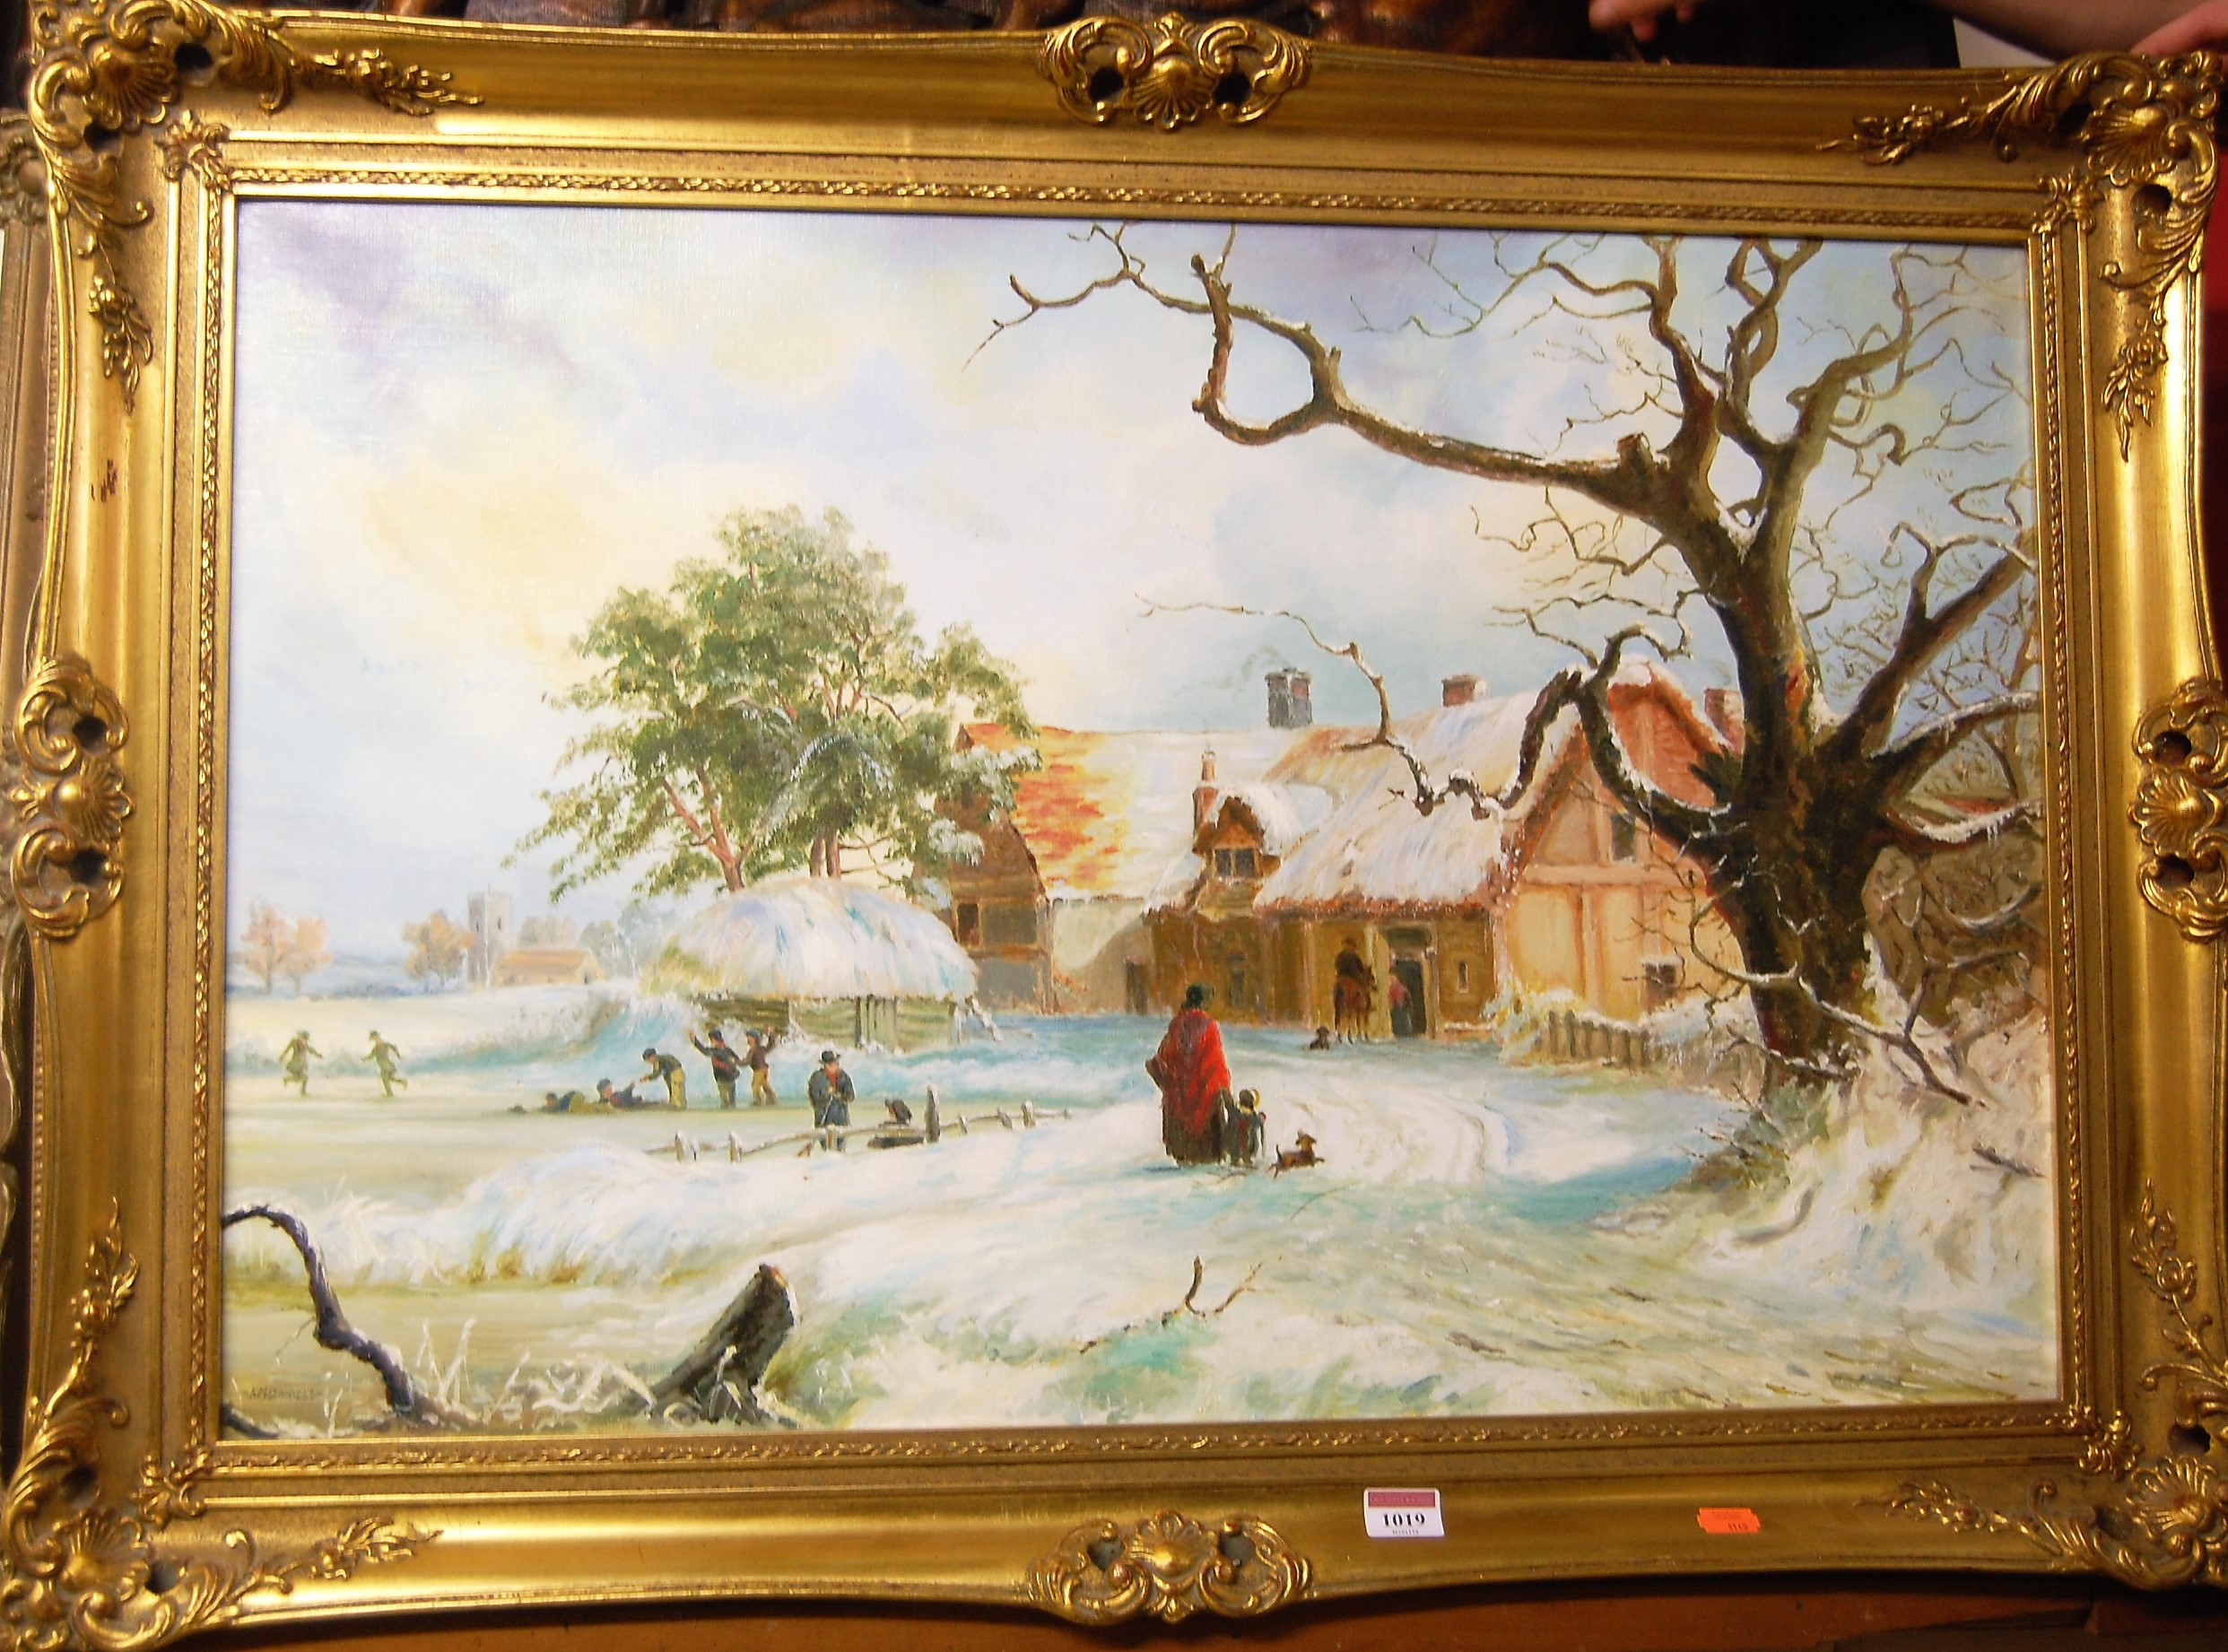 Lot 1019 - After Thomas Smythe - Winter landscape, oil on canvas, 49 x 74cm